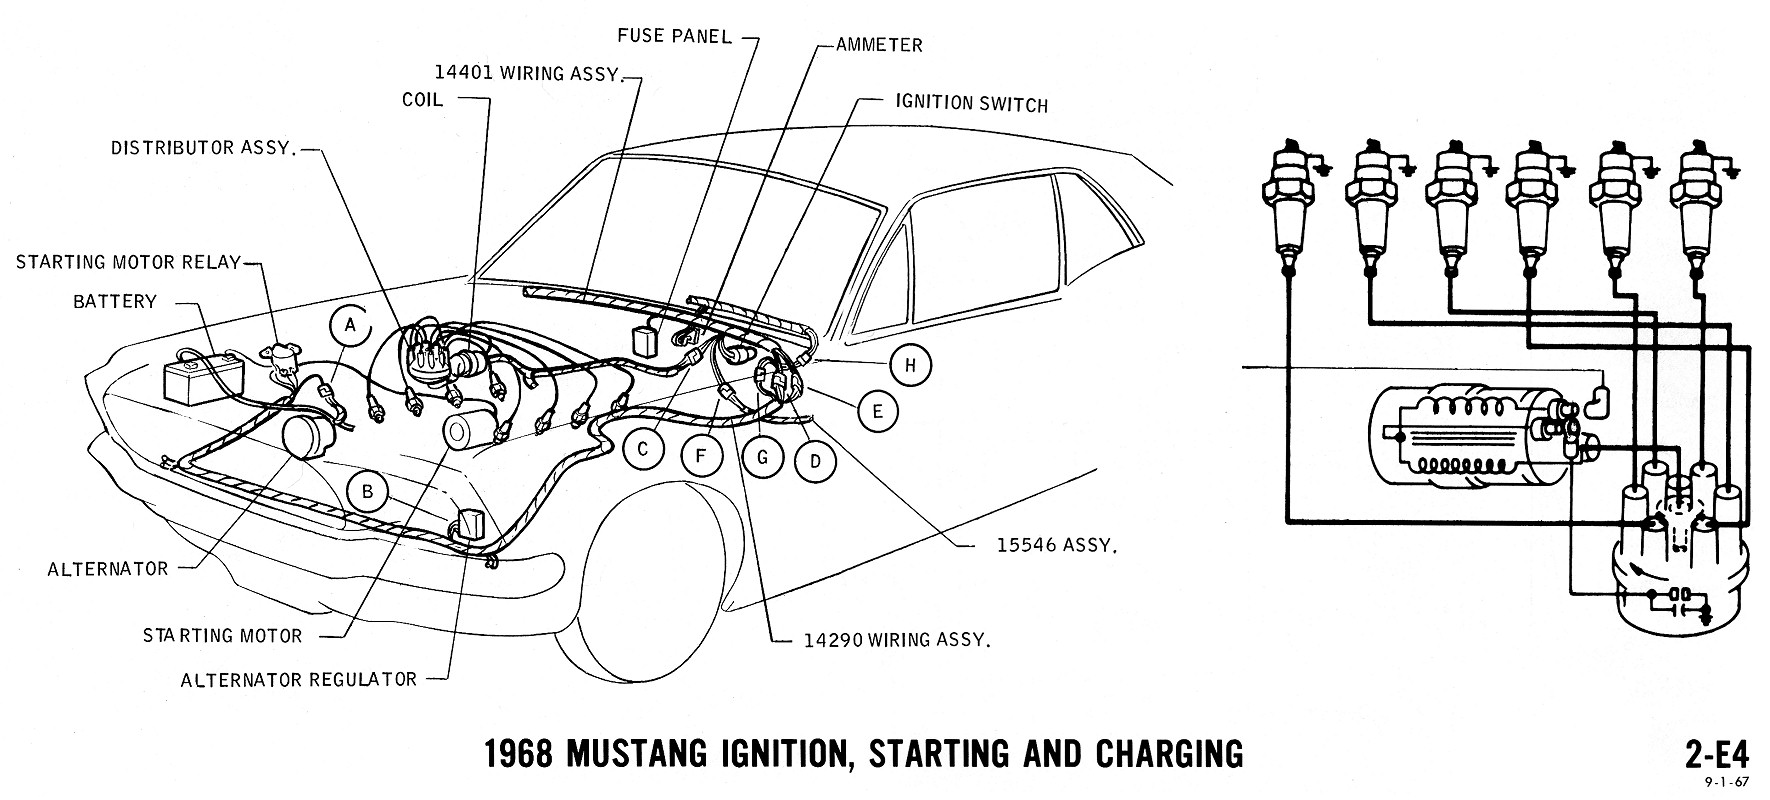 1968 Mustang Wiring Diagram Vacuum Schematics on light switch wiring diagram for a to